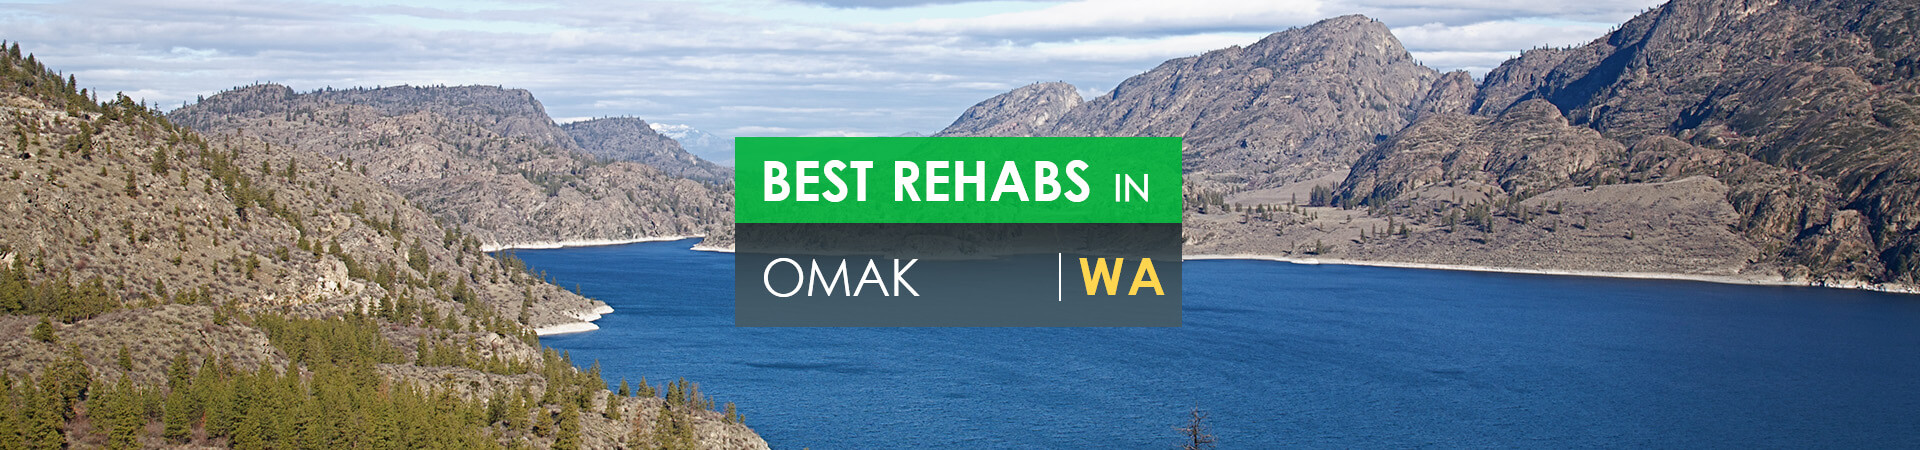 Best rehabs in Omak, WA